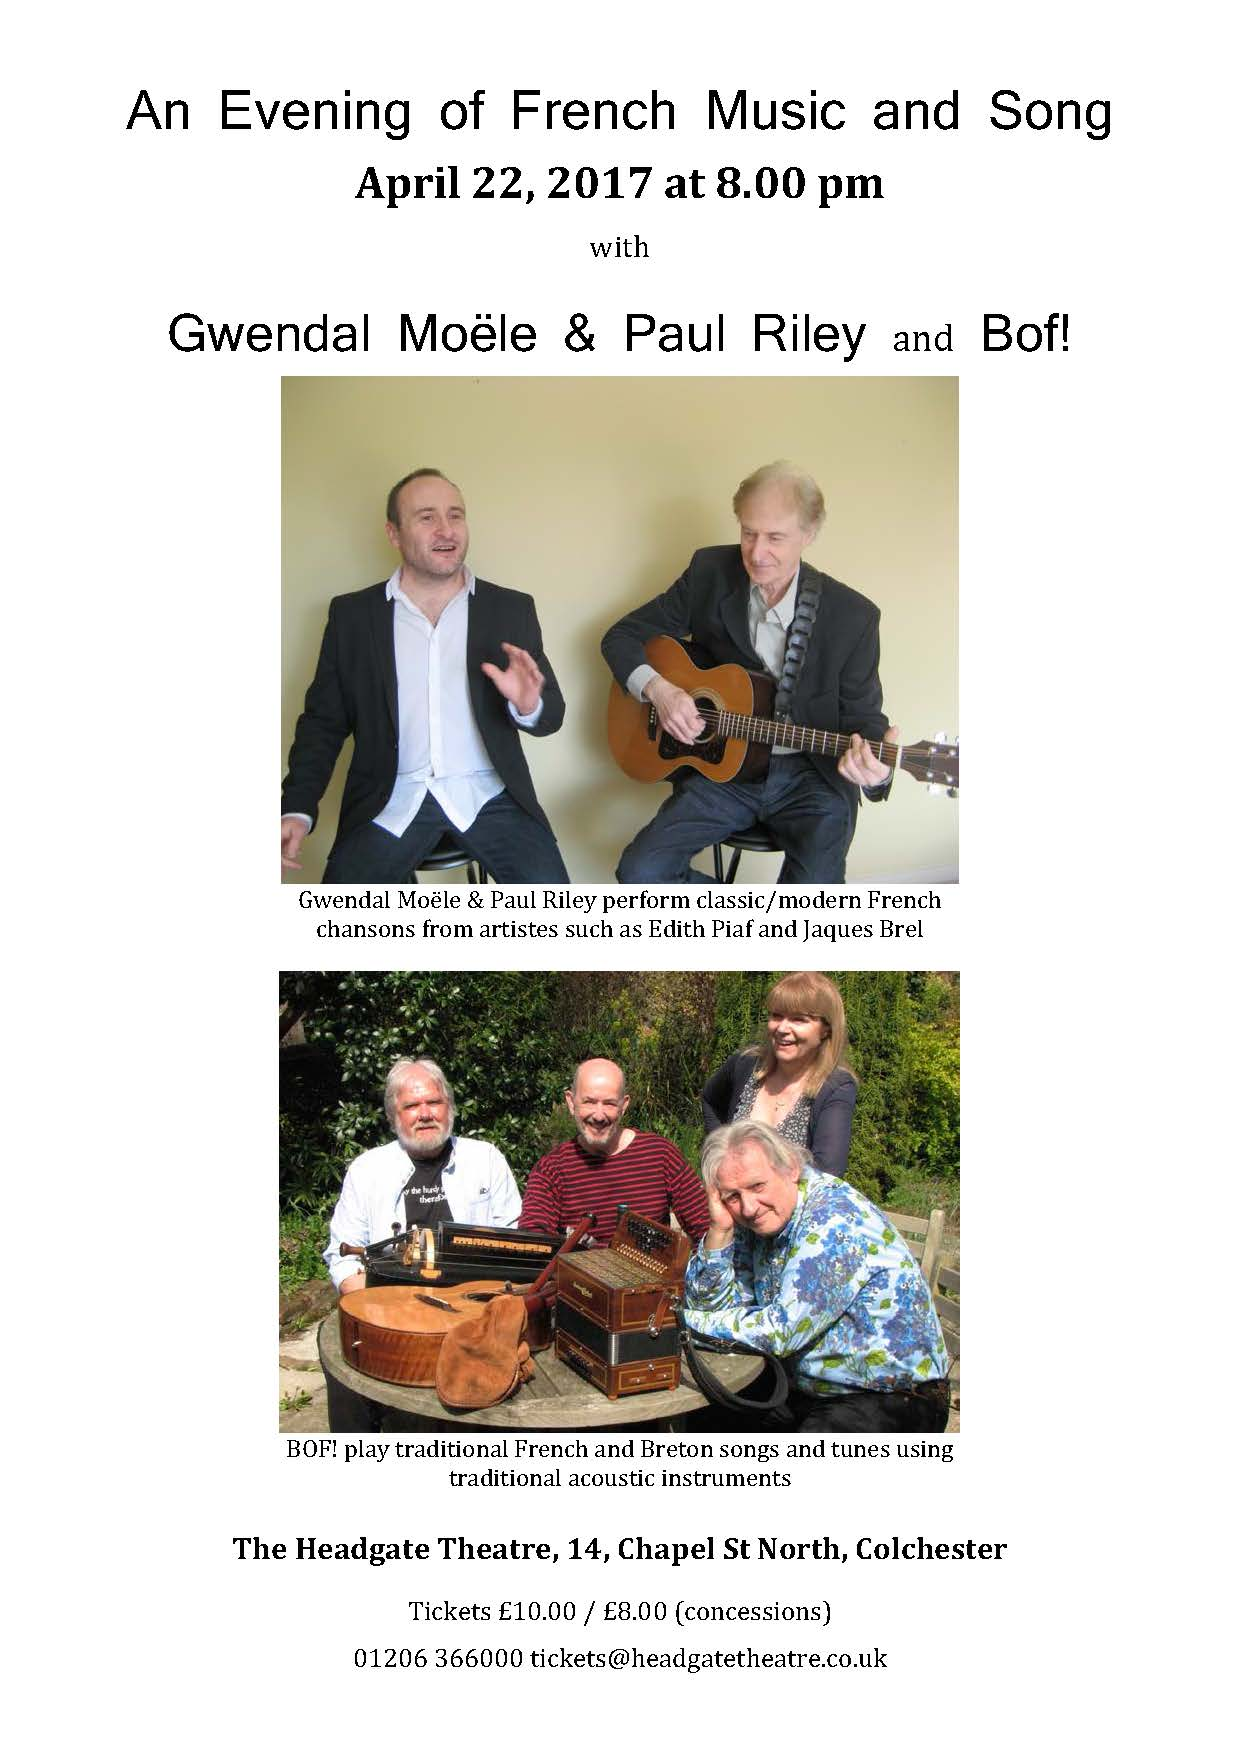 An Evening of French Music and Song at Headgate Theatre